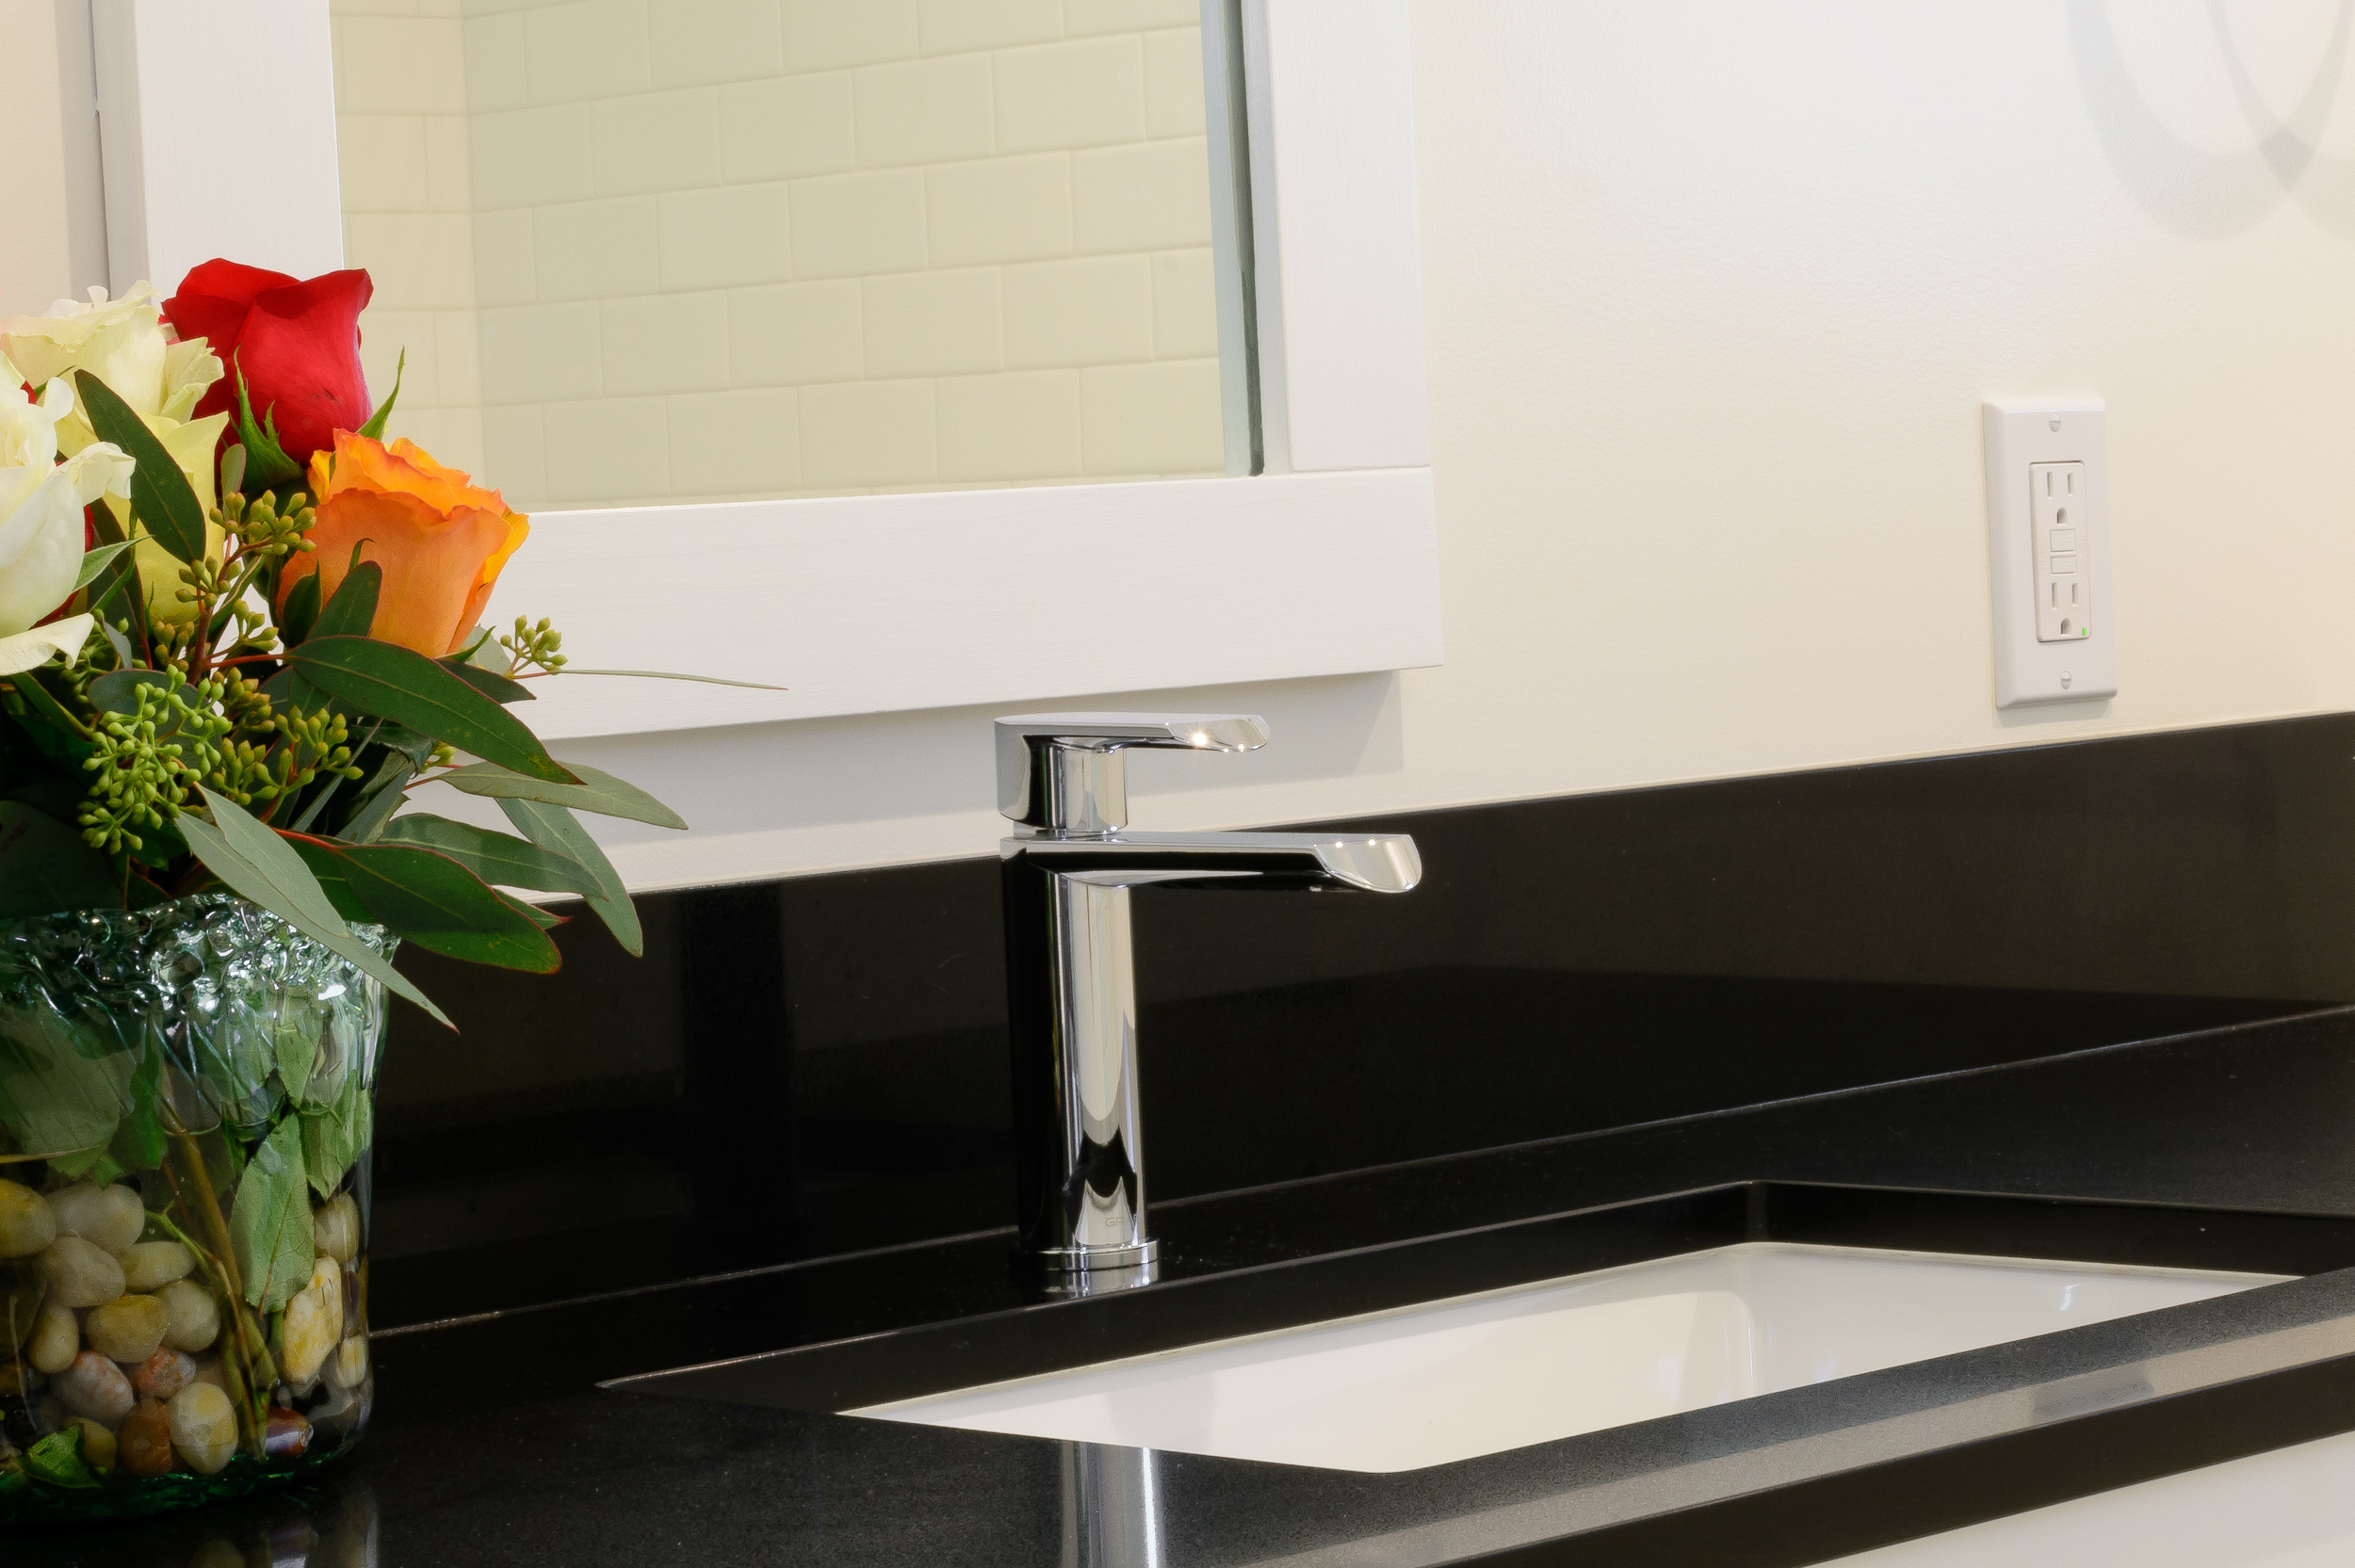 Modern single hole bathroom sink faucet set on an absolute black granite top below a white framed mirror